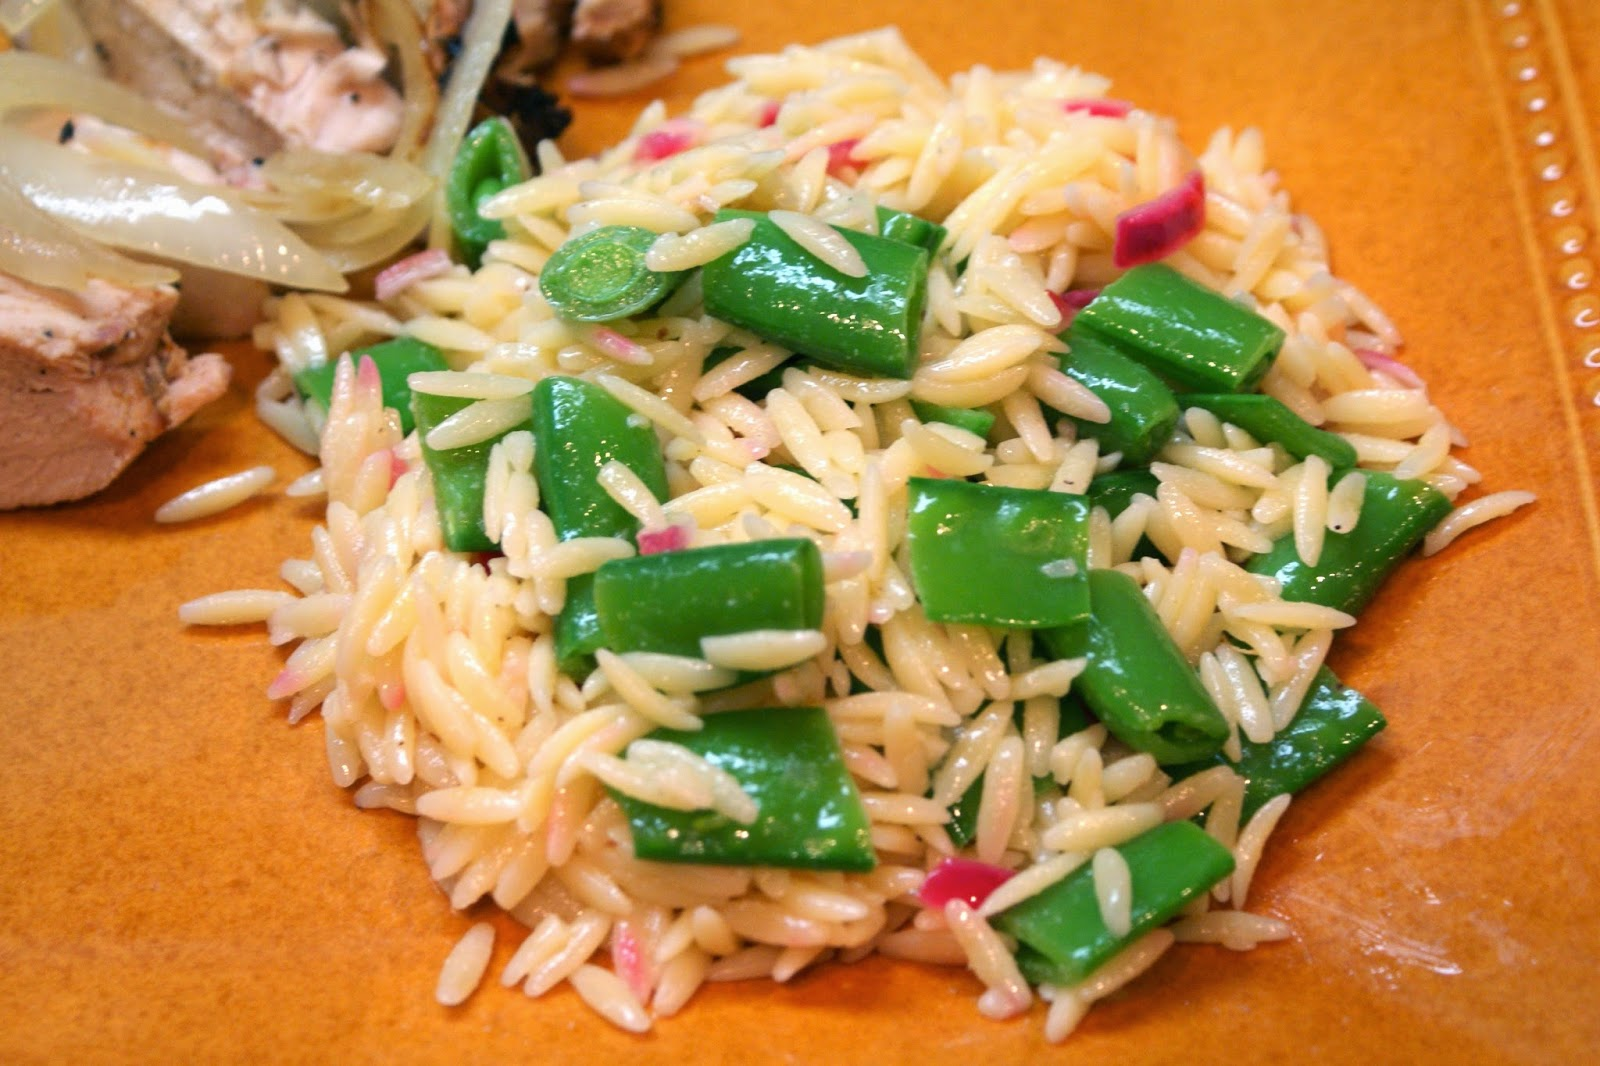 ... with mozzarella orzo and snap peas mozzarella orzo and snap pea salad